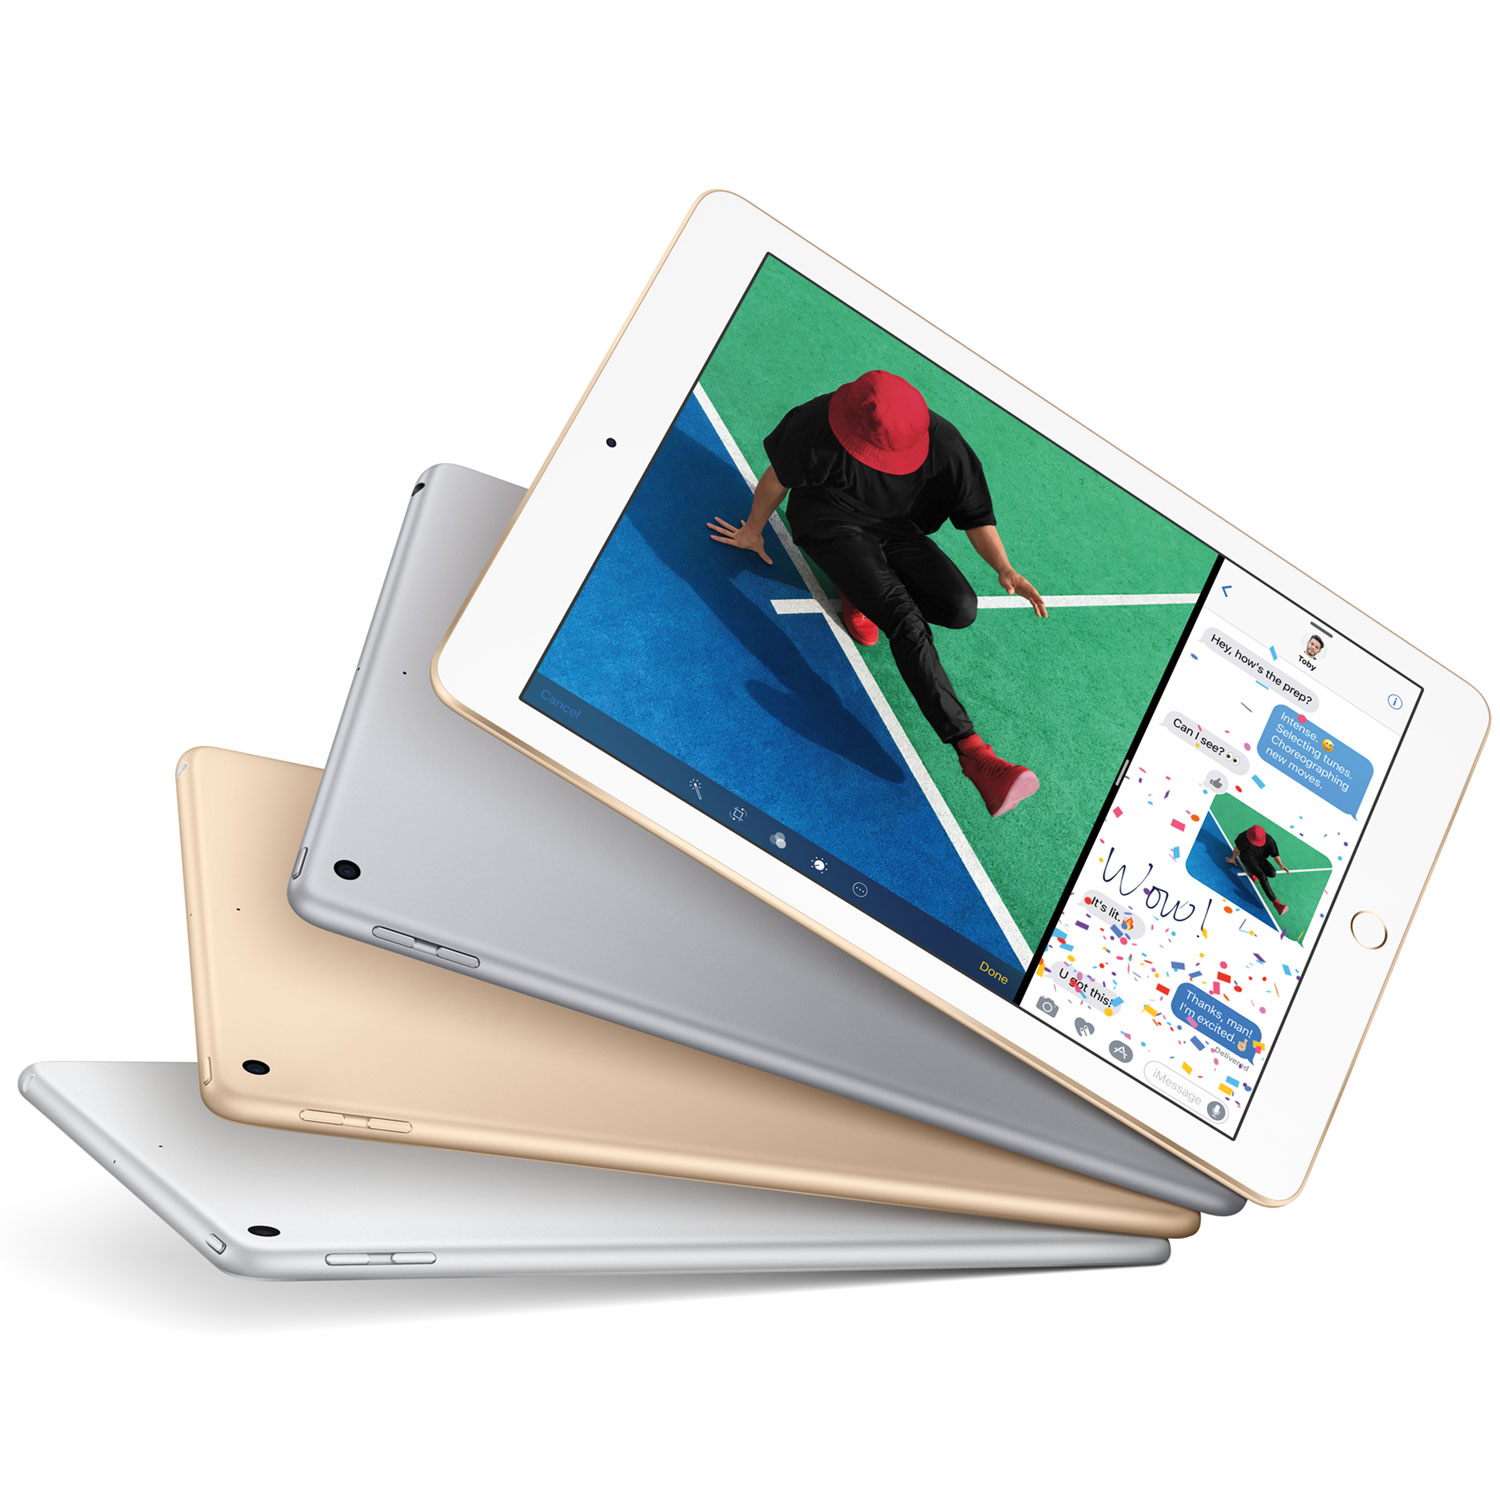 Buy New 9.7-inch iPad